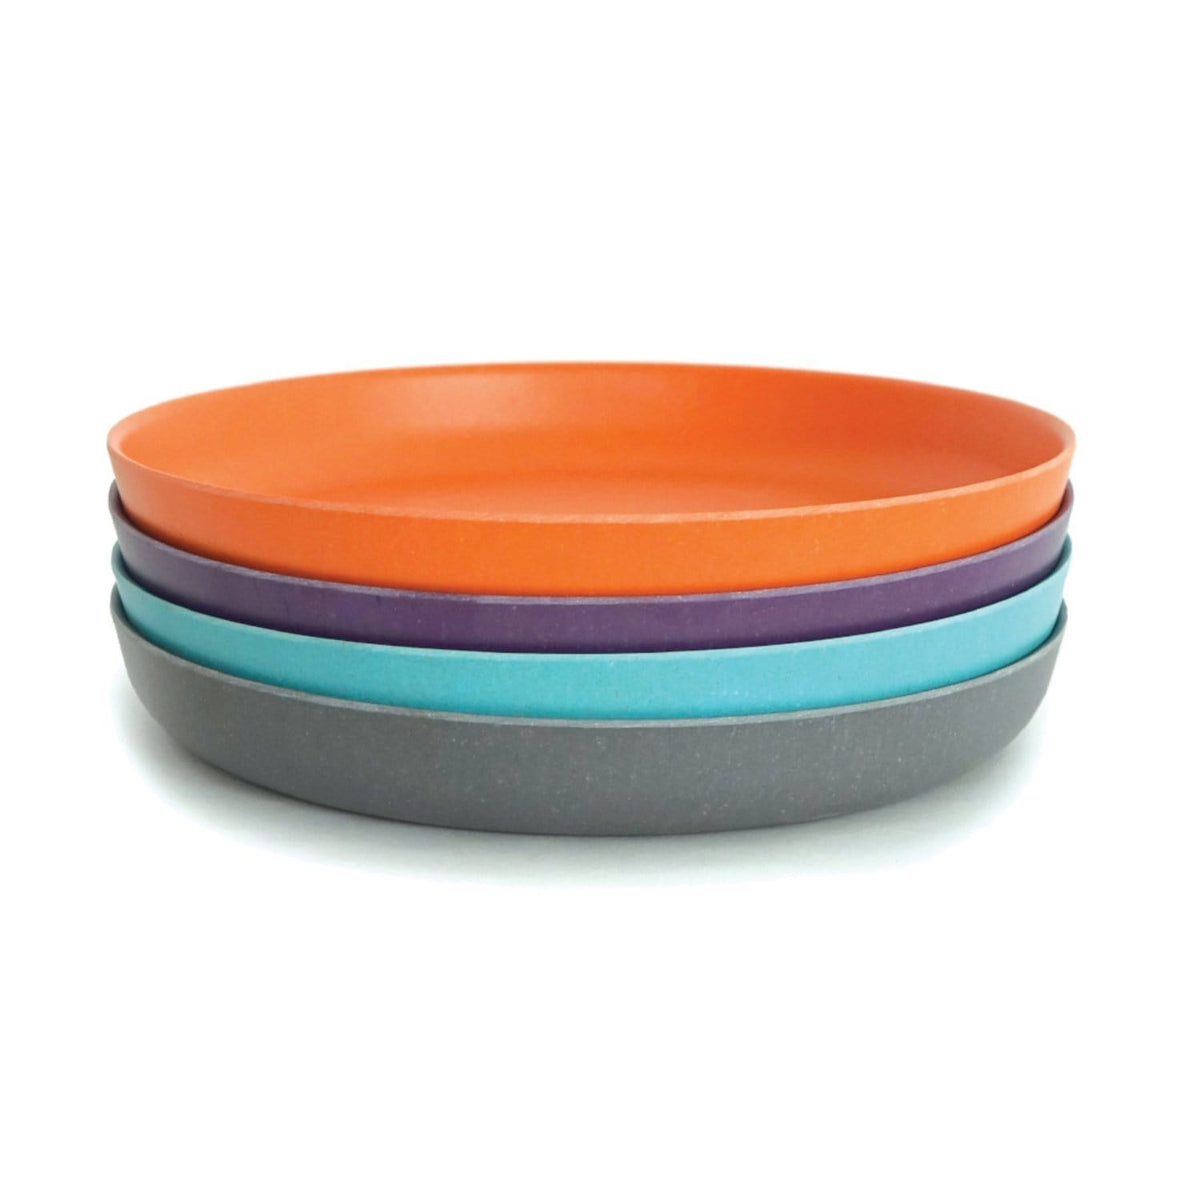 Bambino Small Plate Set 1 Persimmon Prune, Smoke